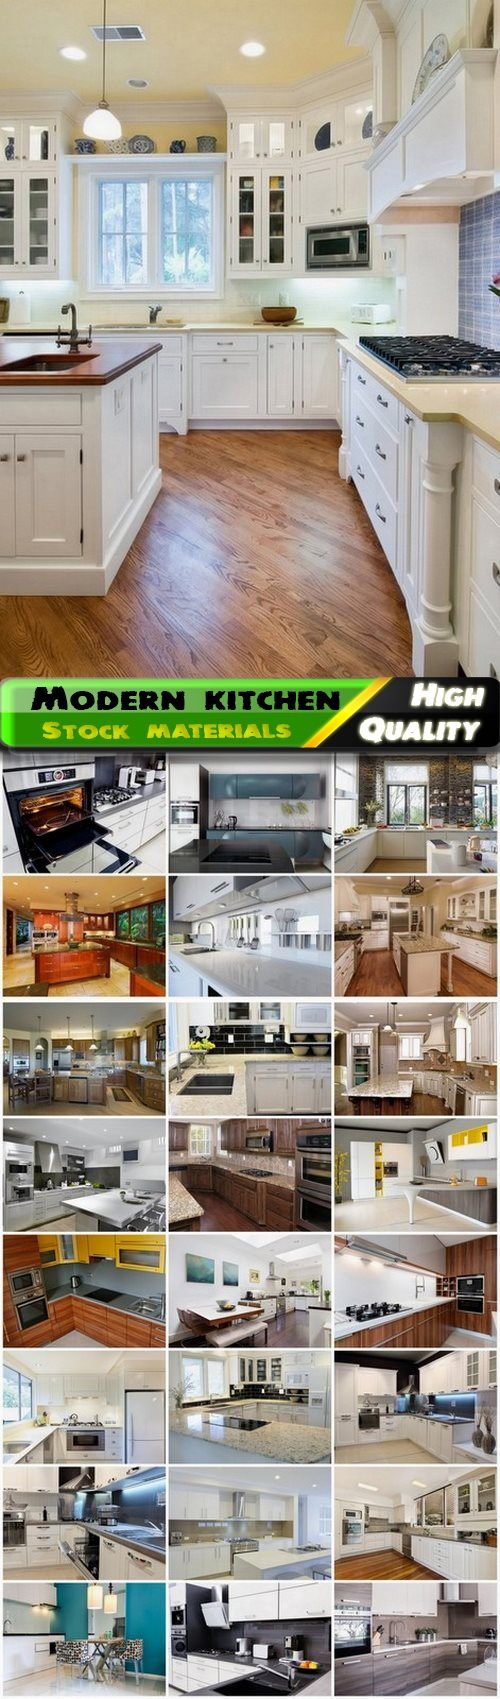 Creative modern home kitchen and place for cooking interior 25 Jpg